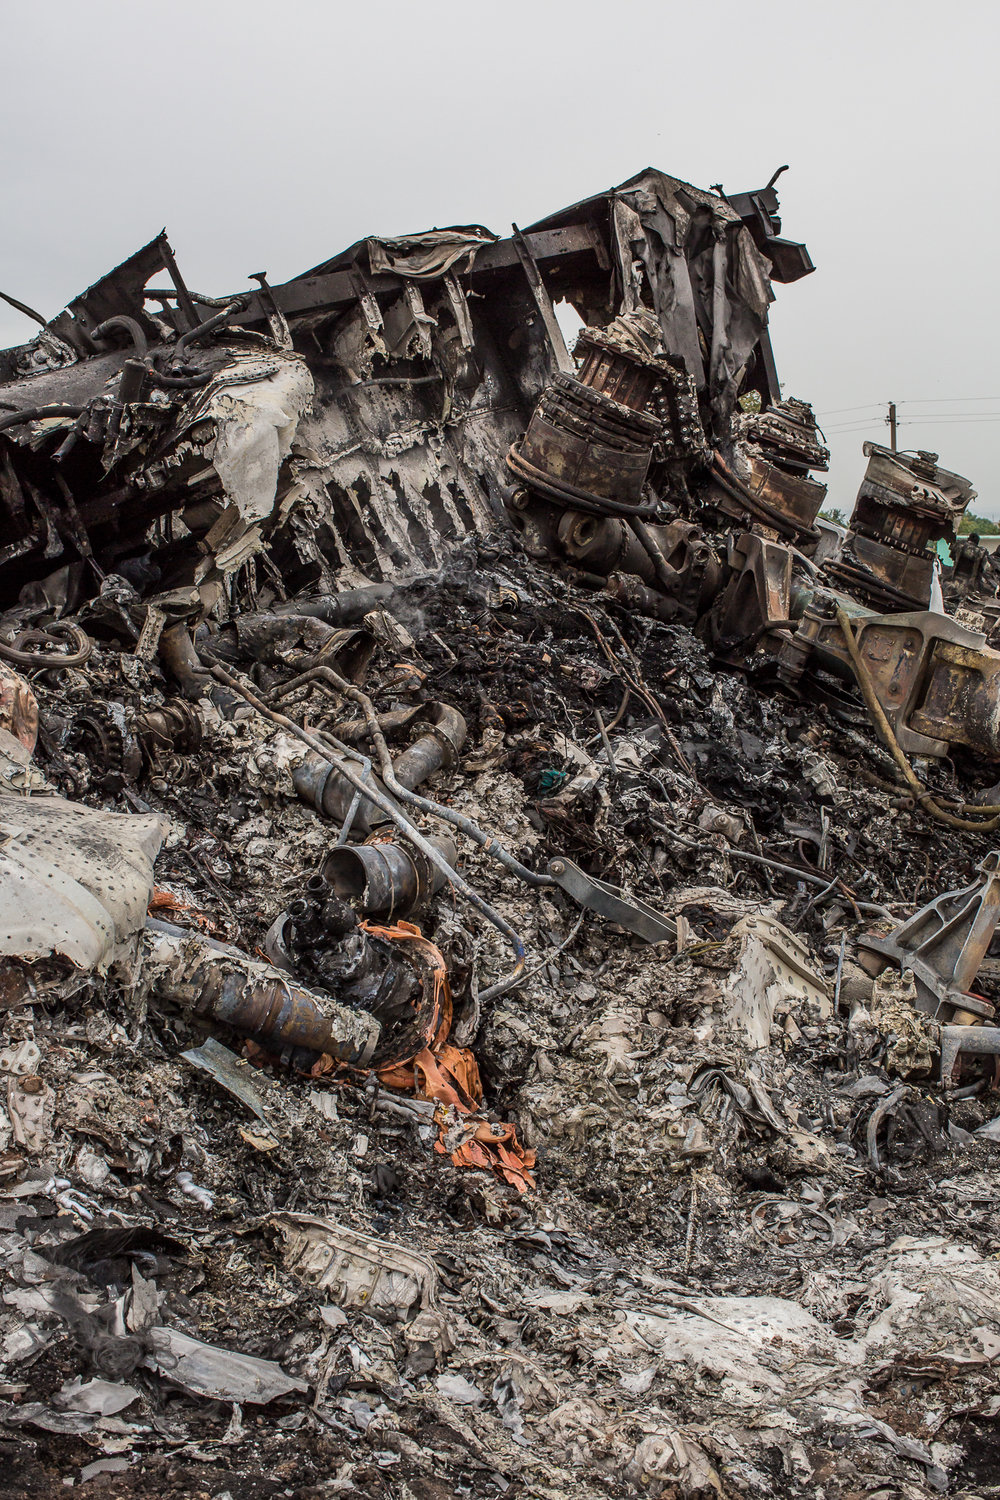 Debris from the crash of Malaysia Airlines flight MH17. Grabovo, Ukraine. July 2014.